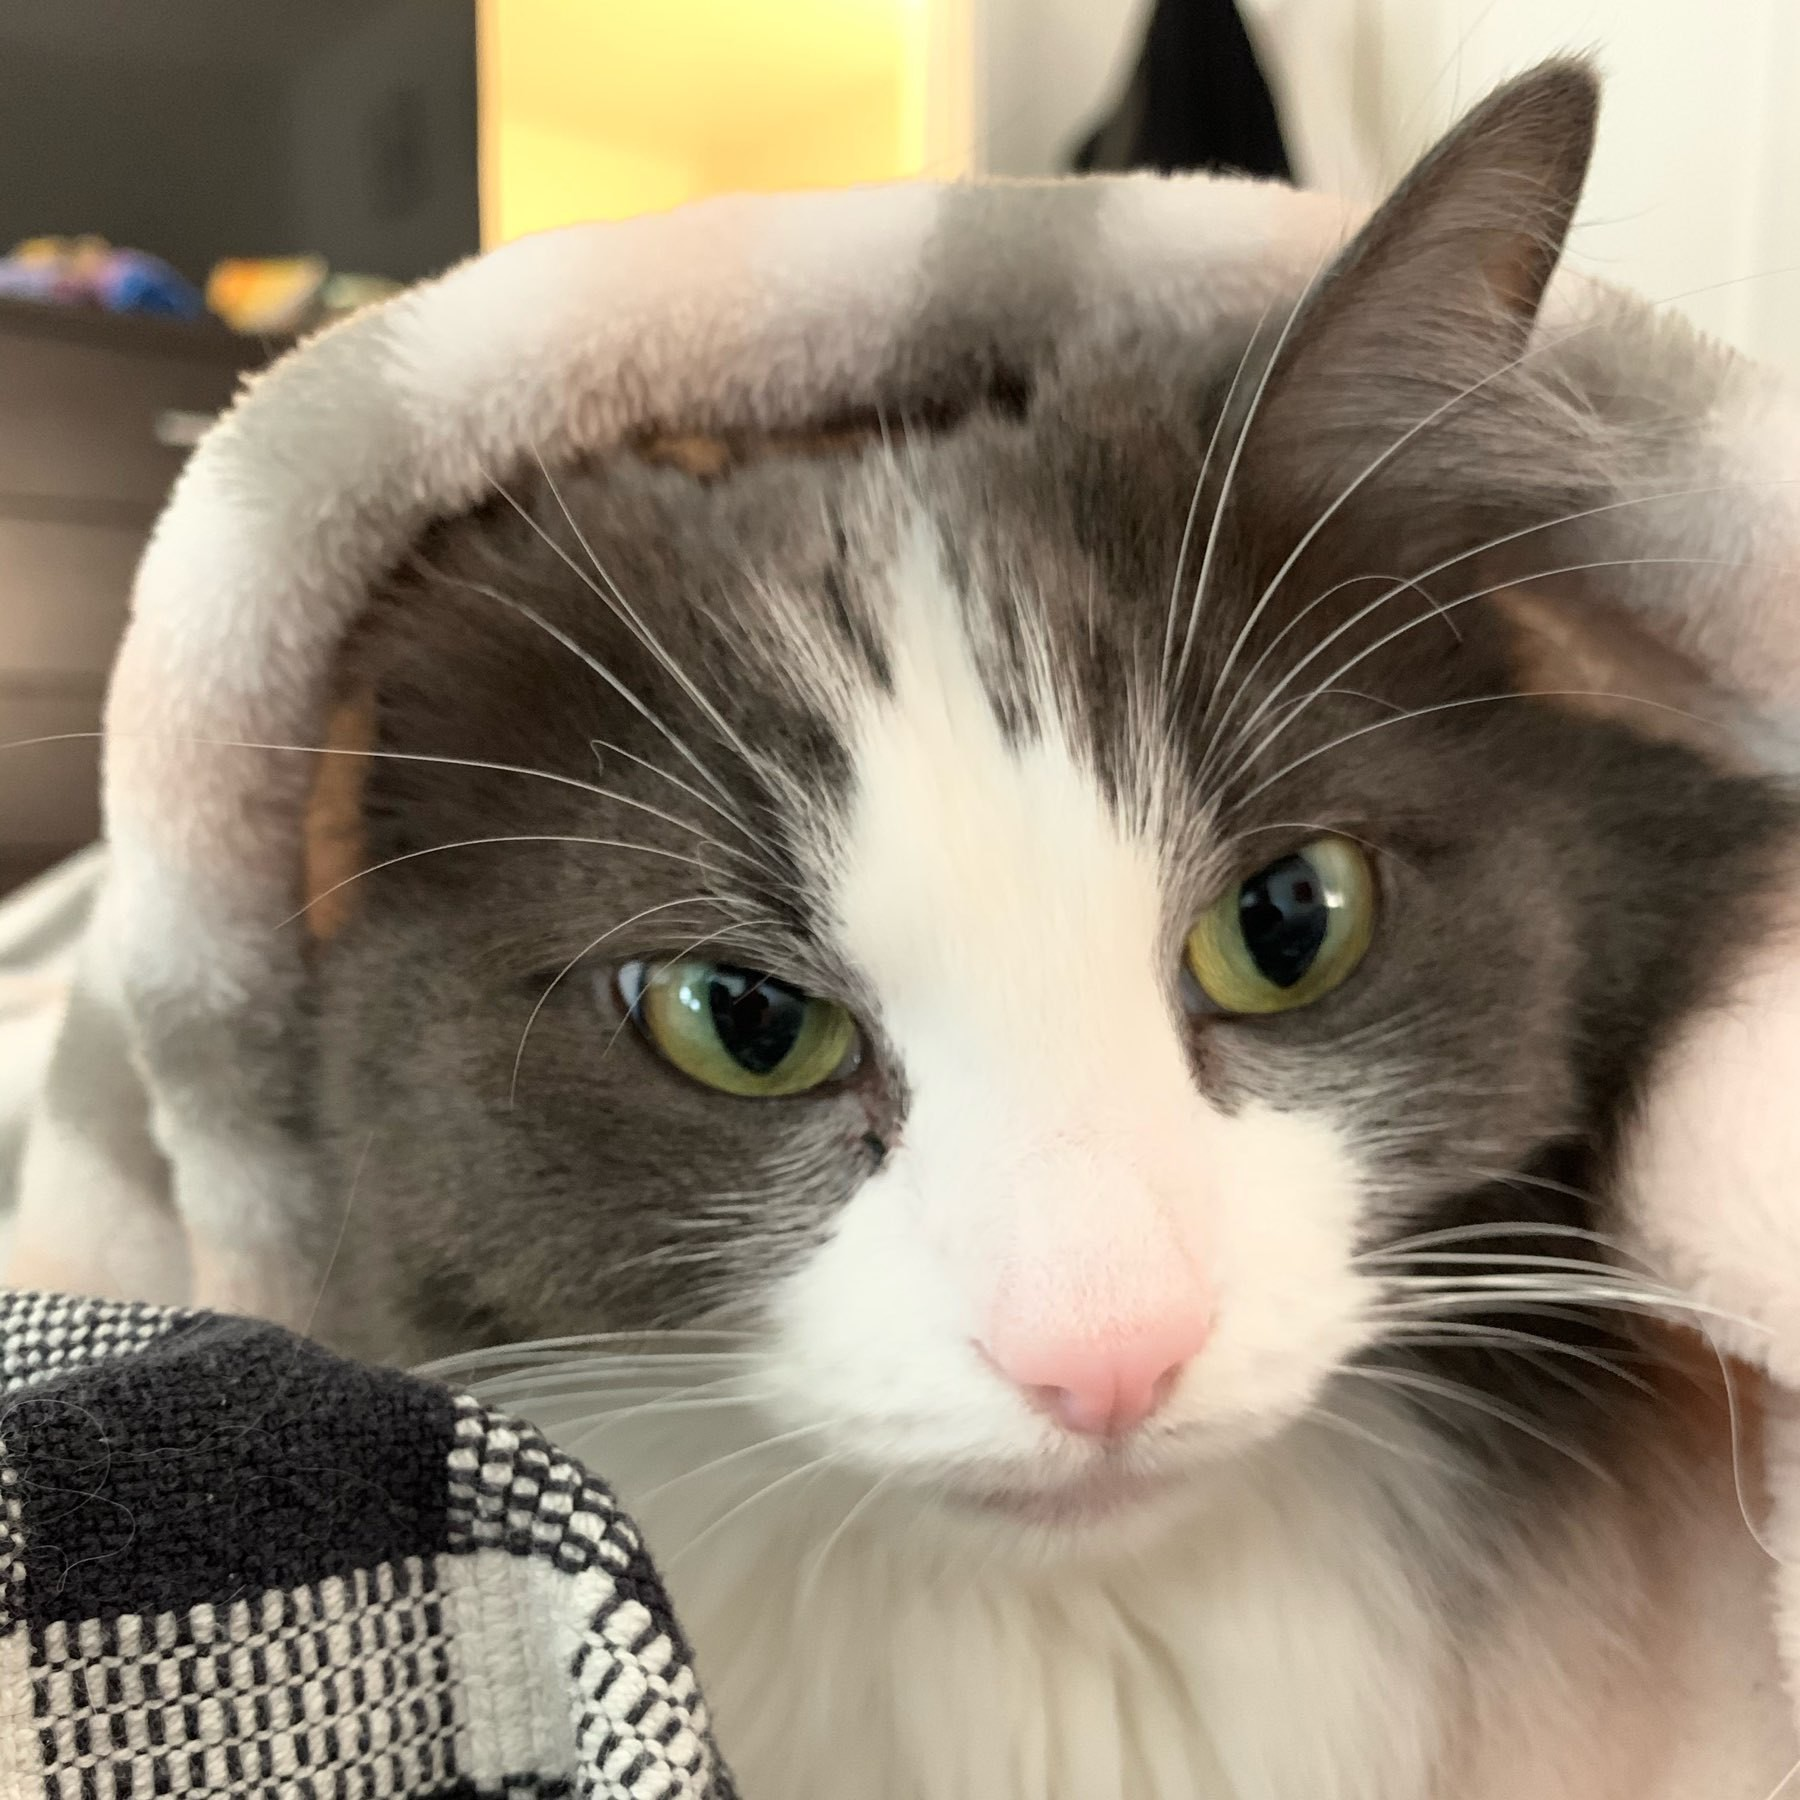 The head of a grey and white medium haired cat looks out from a nest of blankets